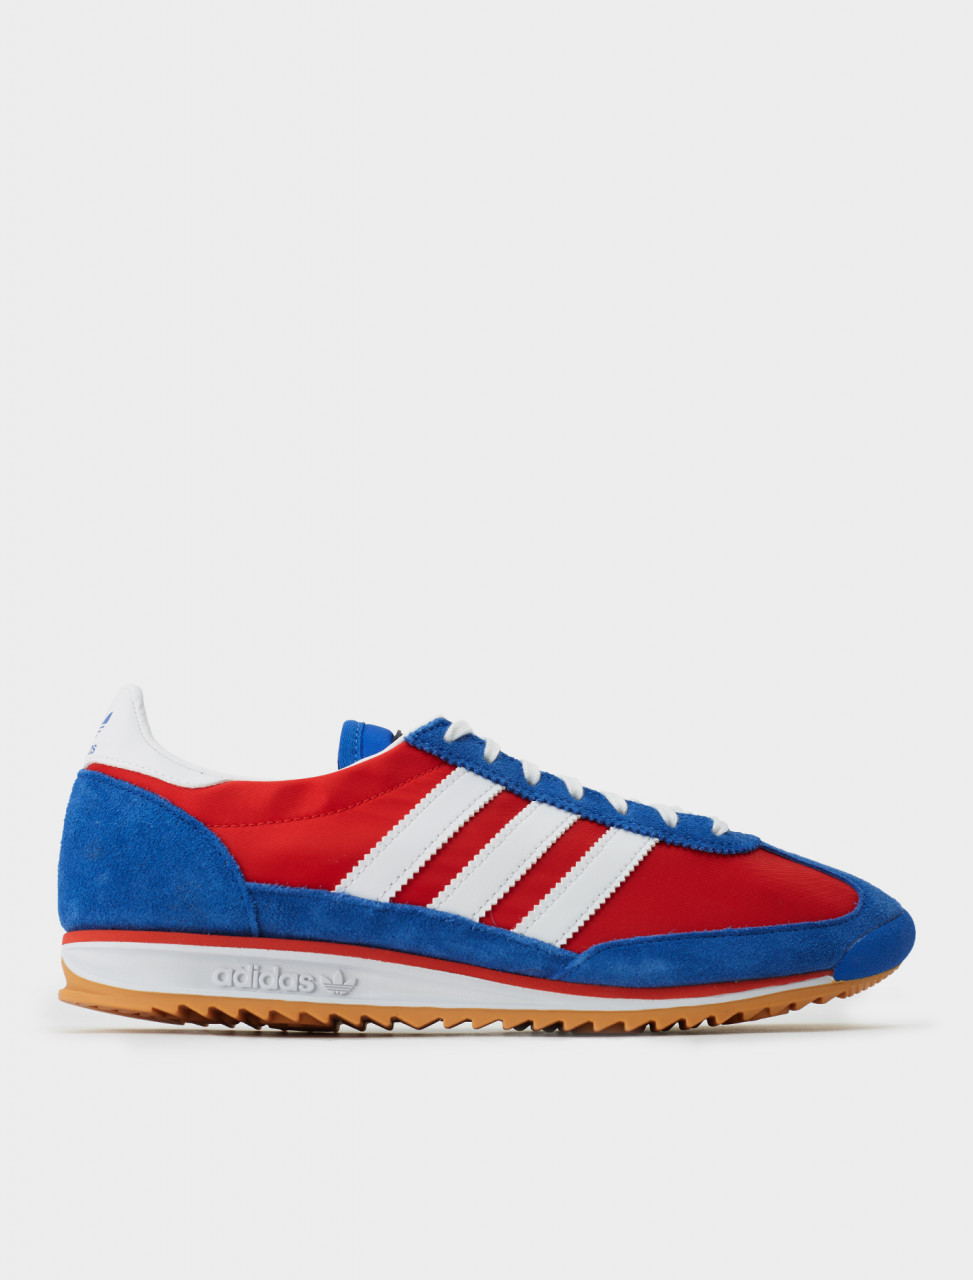 Adidas x Lotta Volkova SL72 Sneaker in Red, Blue and White